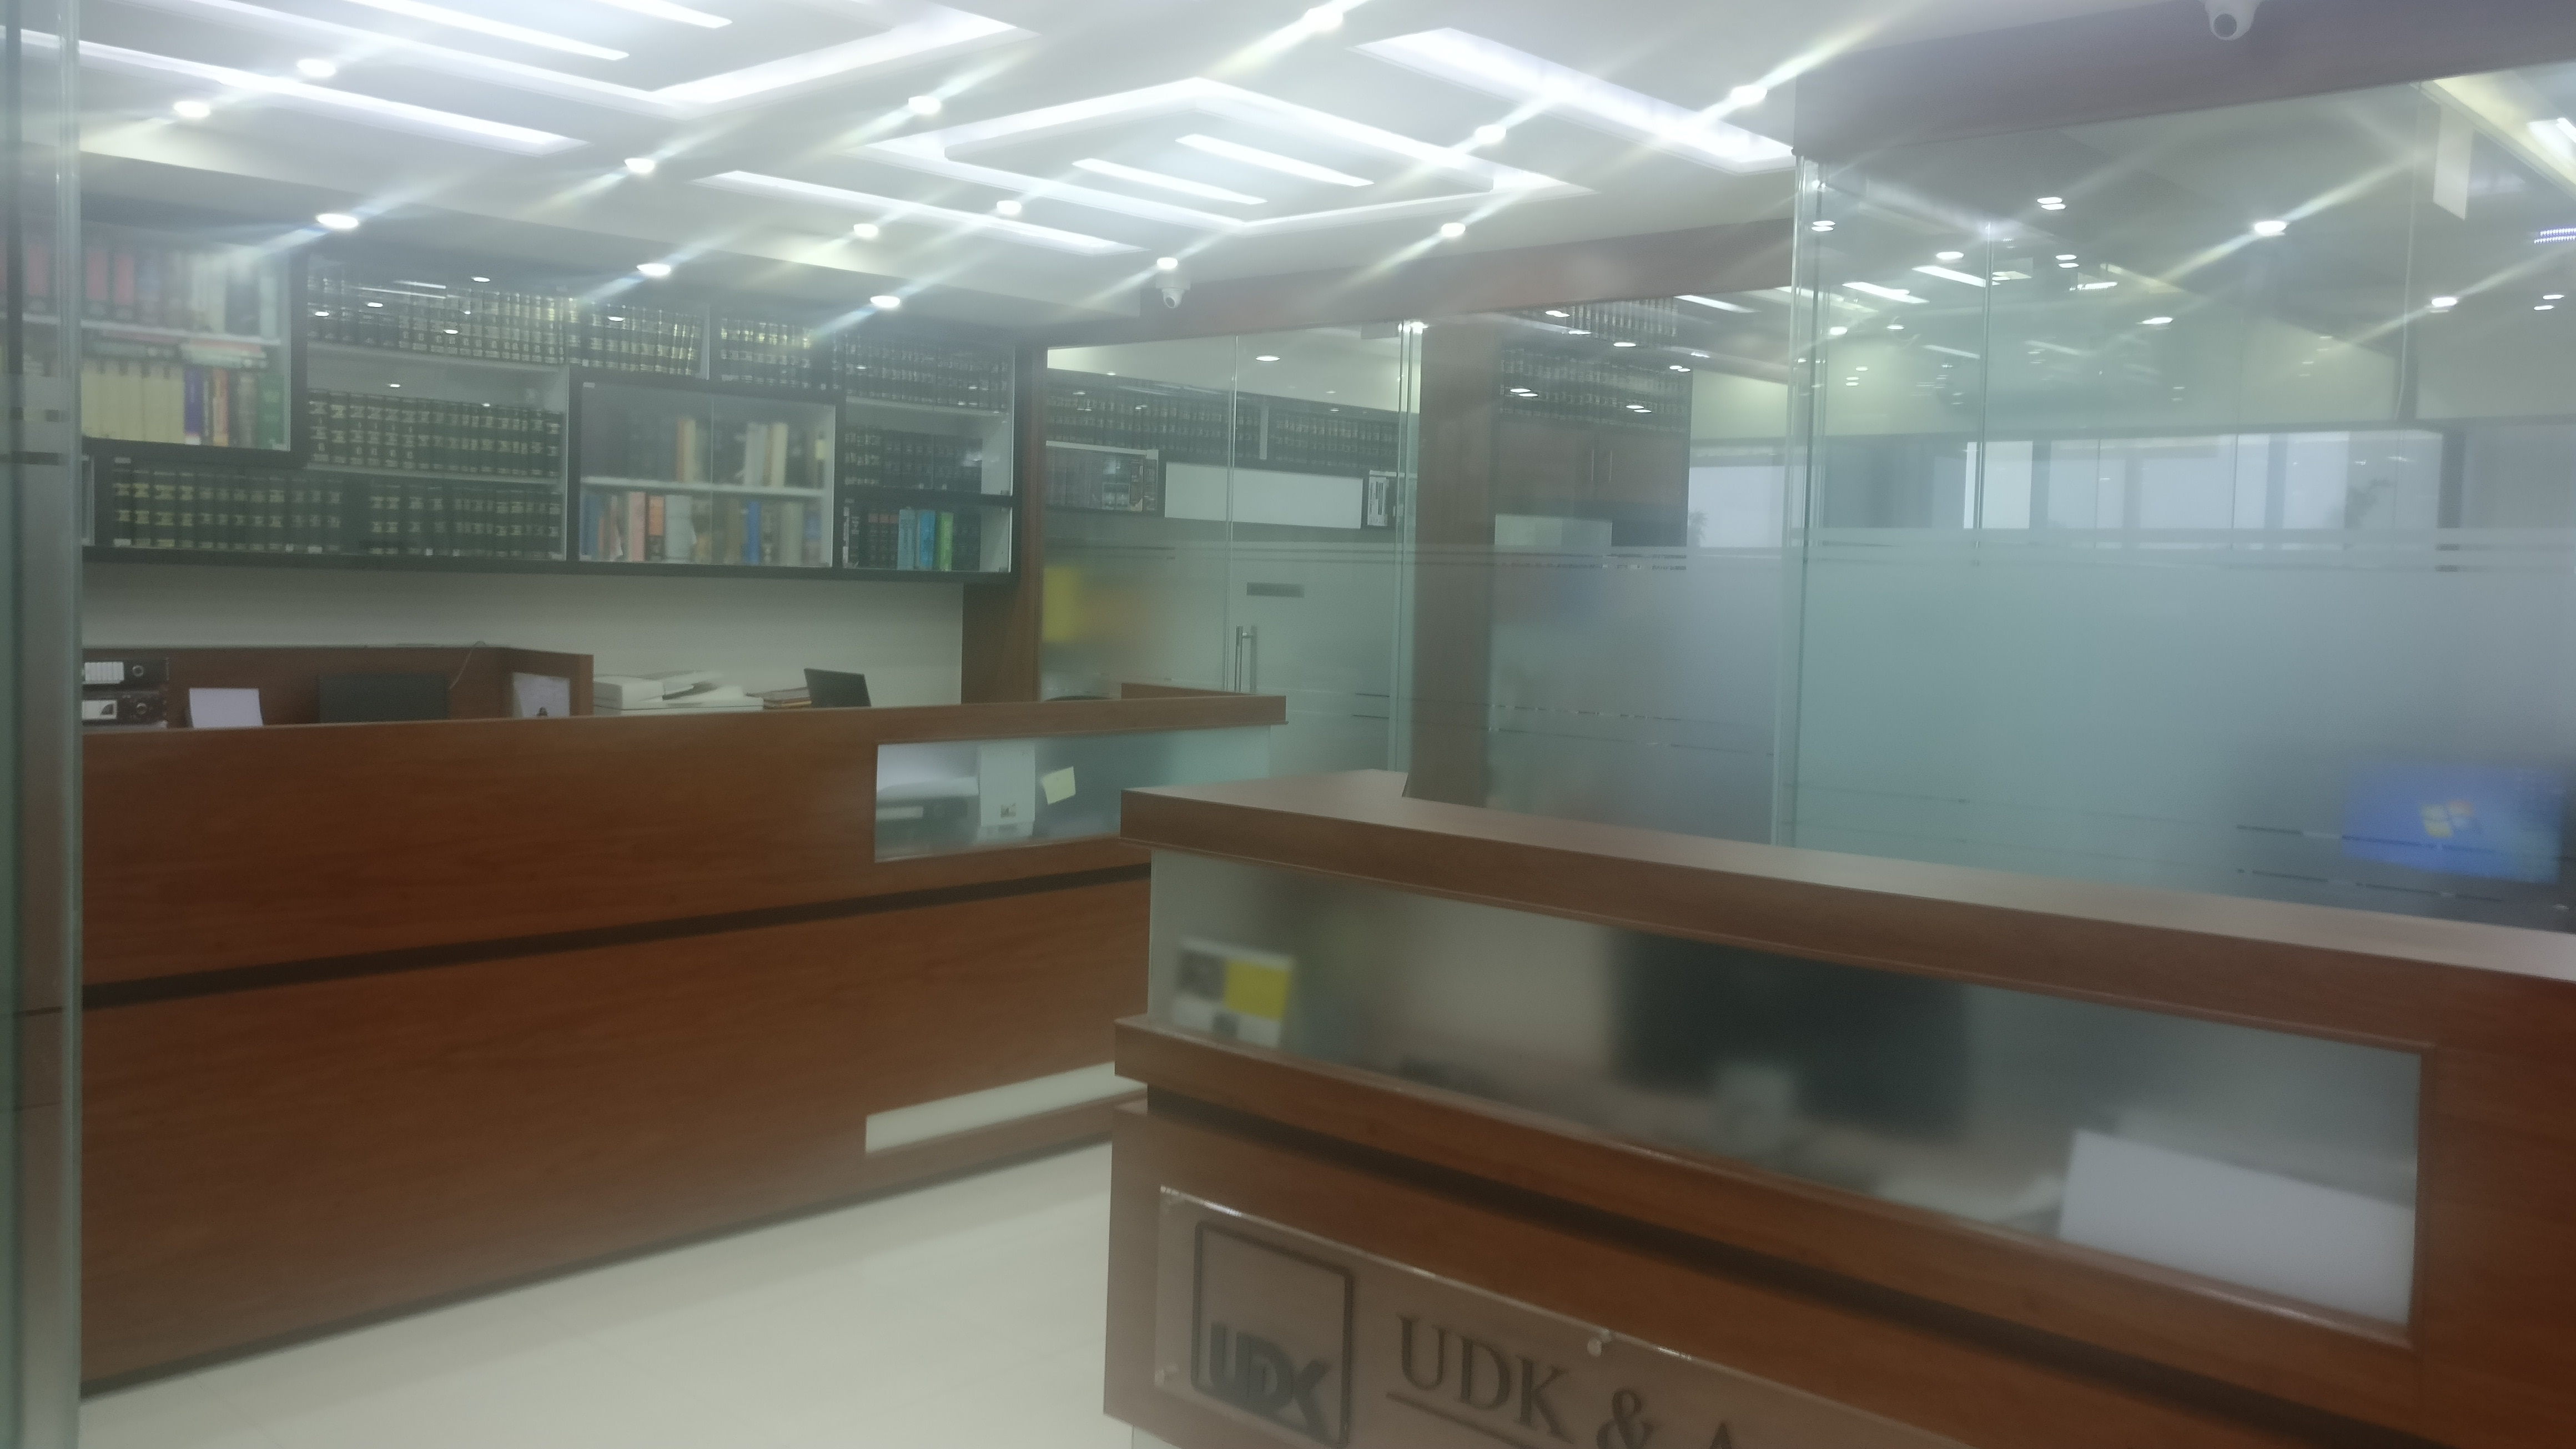 UDK and Associates